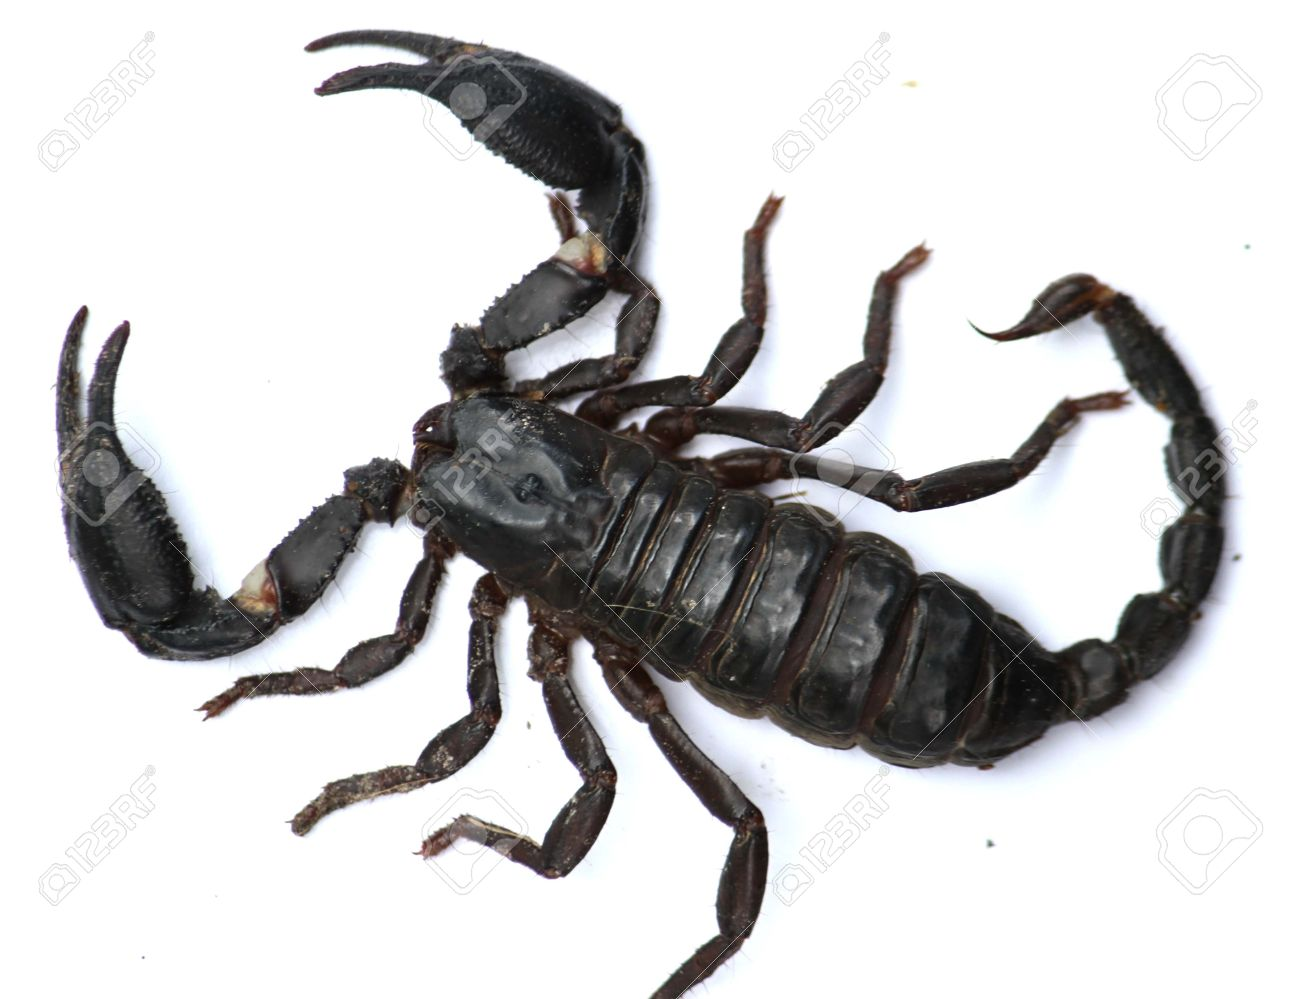 Scorpion , be one poisonous kind animal , will liberate the poison